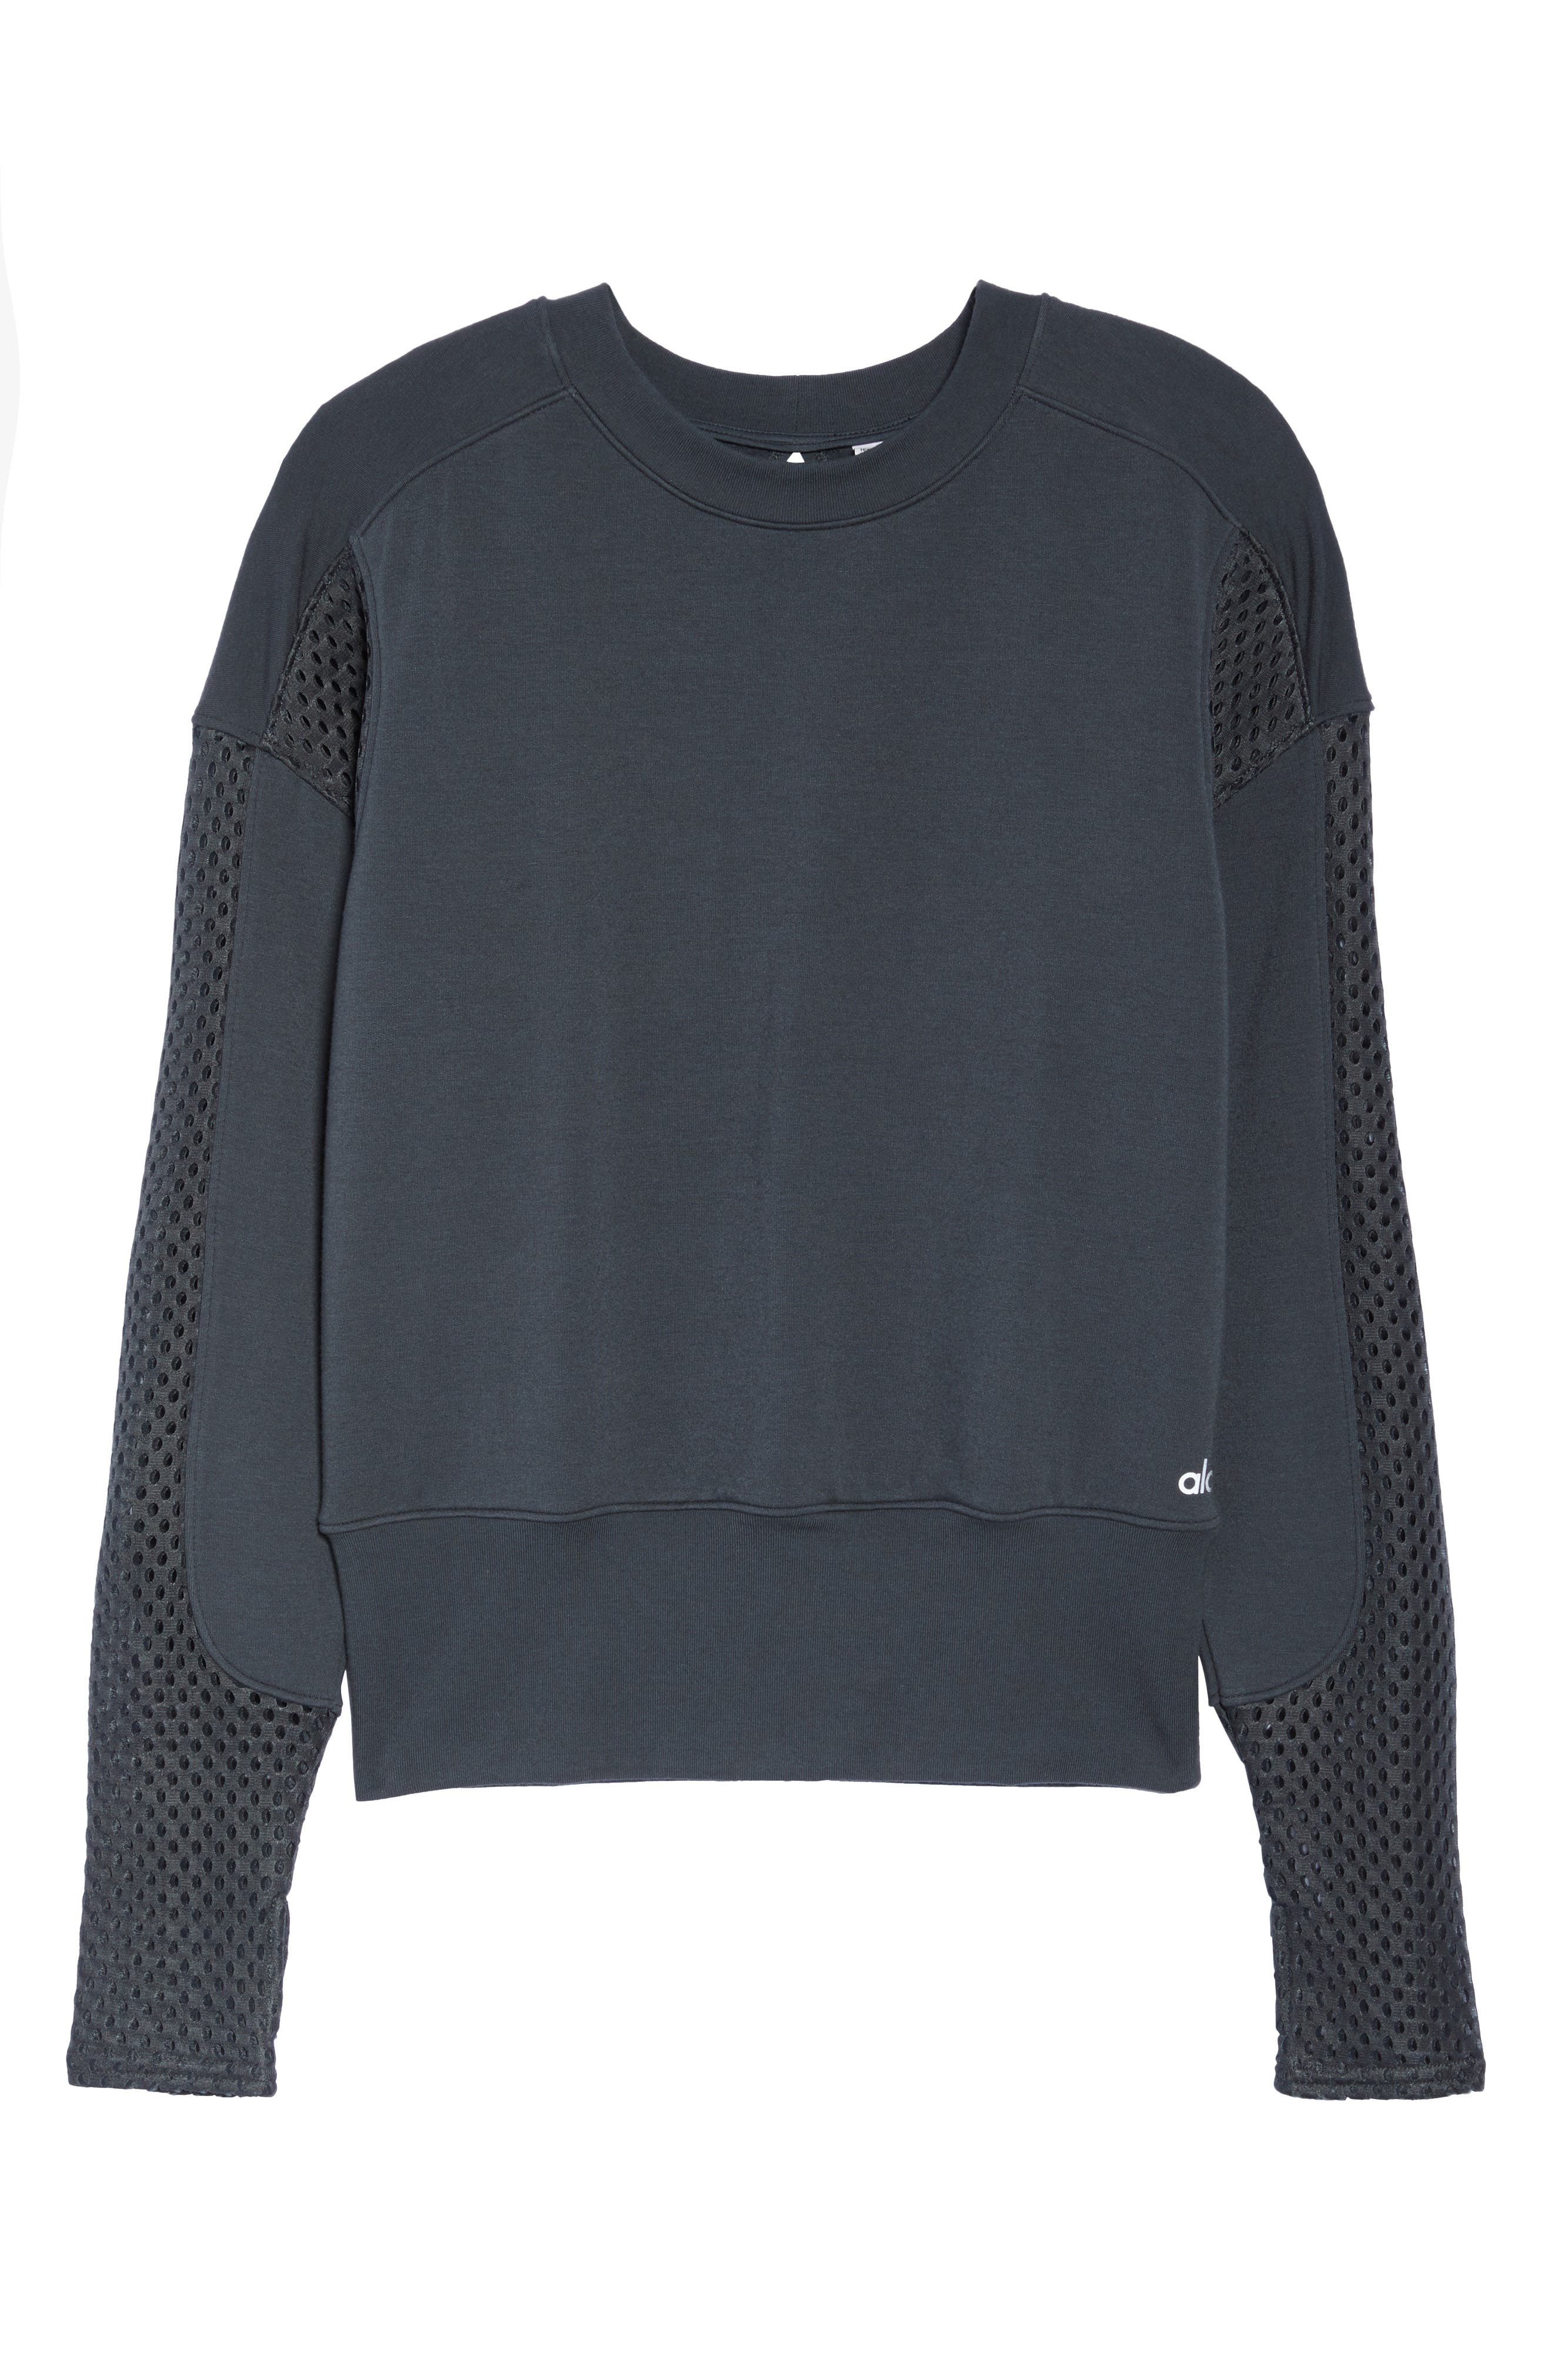 Formation Pullover,                             Alternate thumbnail 7, color,                             048